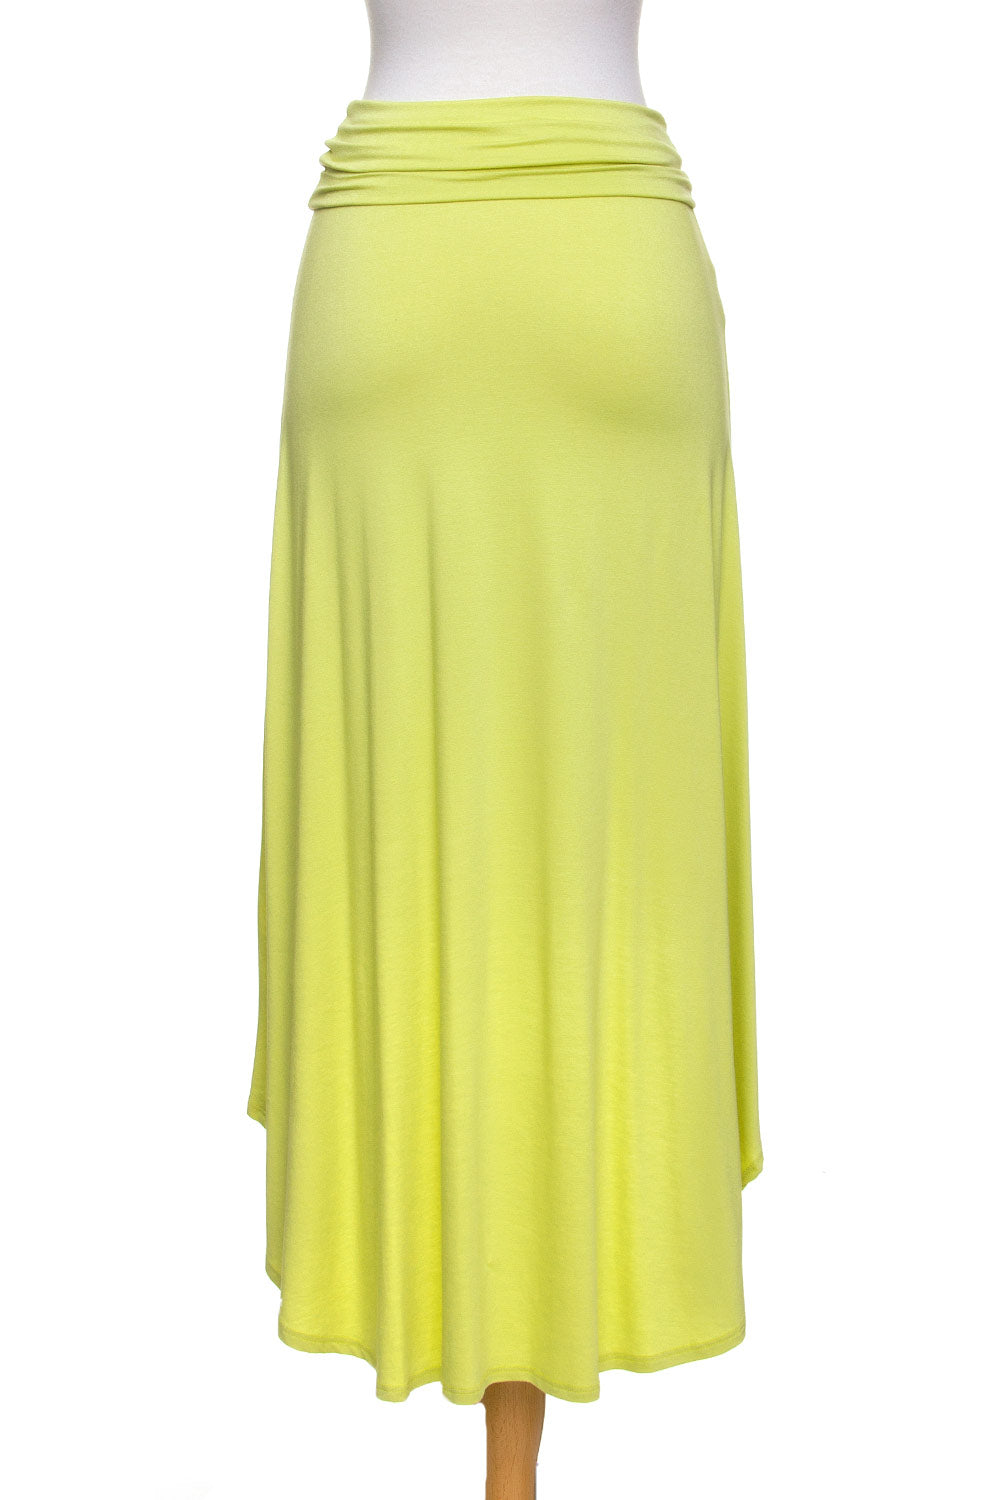 Type 3 Lime Squeeze Skirt